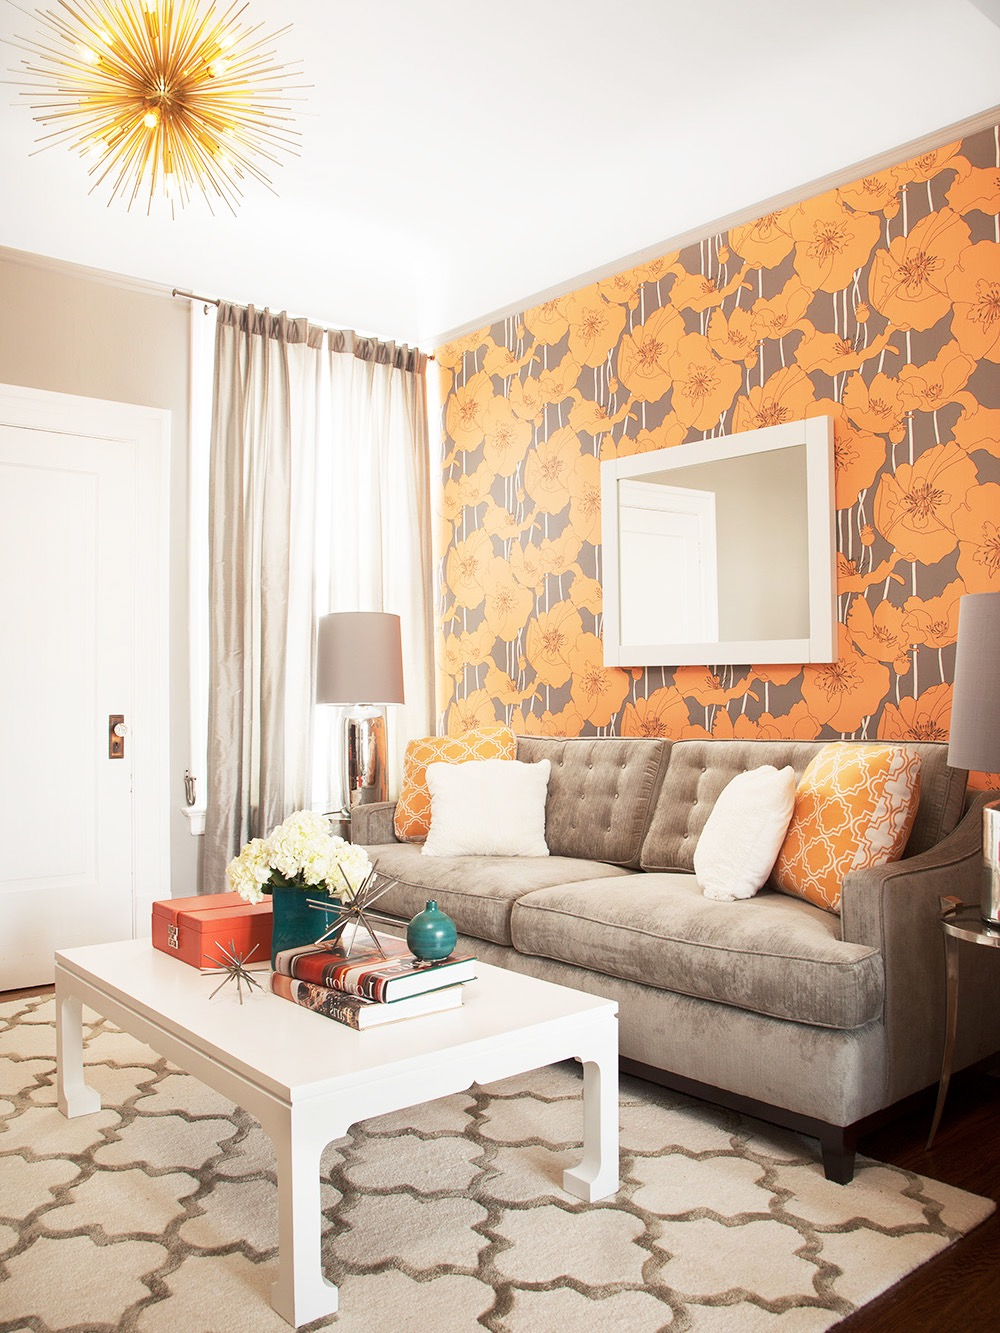 Contemporary Moroccan Inspired Living Room With Neutral Sofa And Bold Floral Wallpaper (Image 5 of 25)